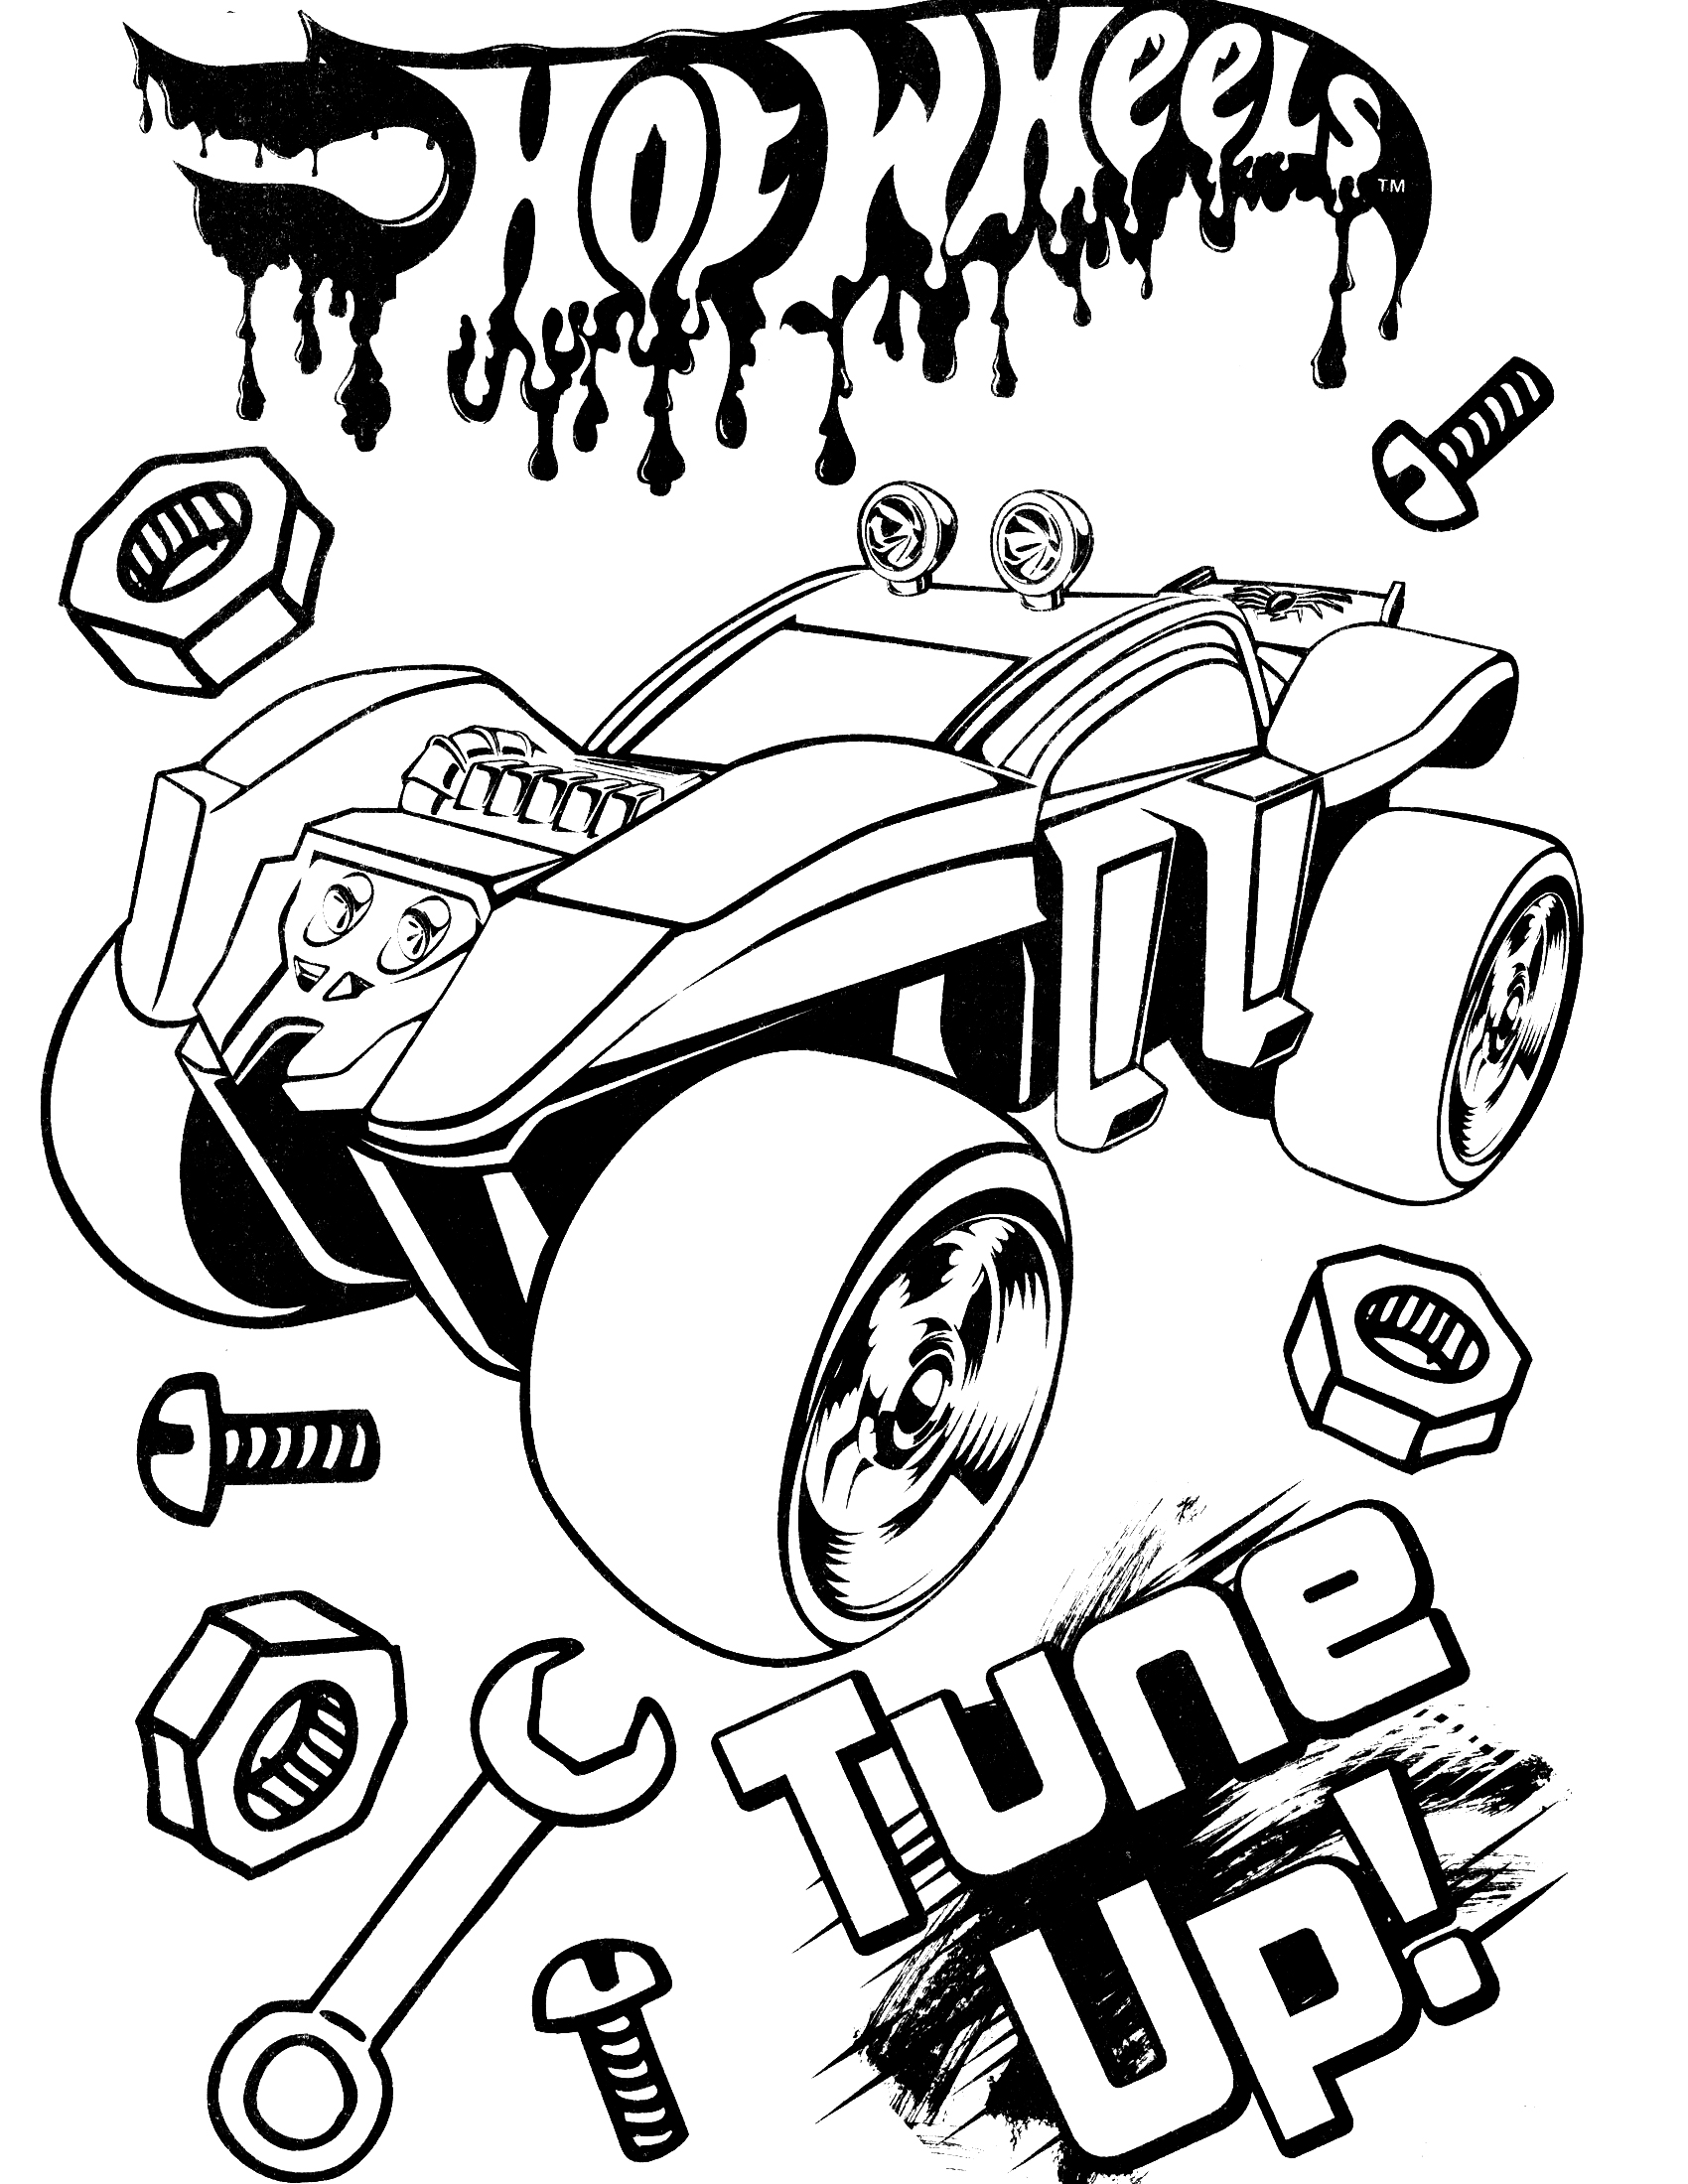 hotwheels colouring pages free printable hot wheels coloring pages for kids pages colouring hotwheels